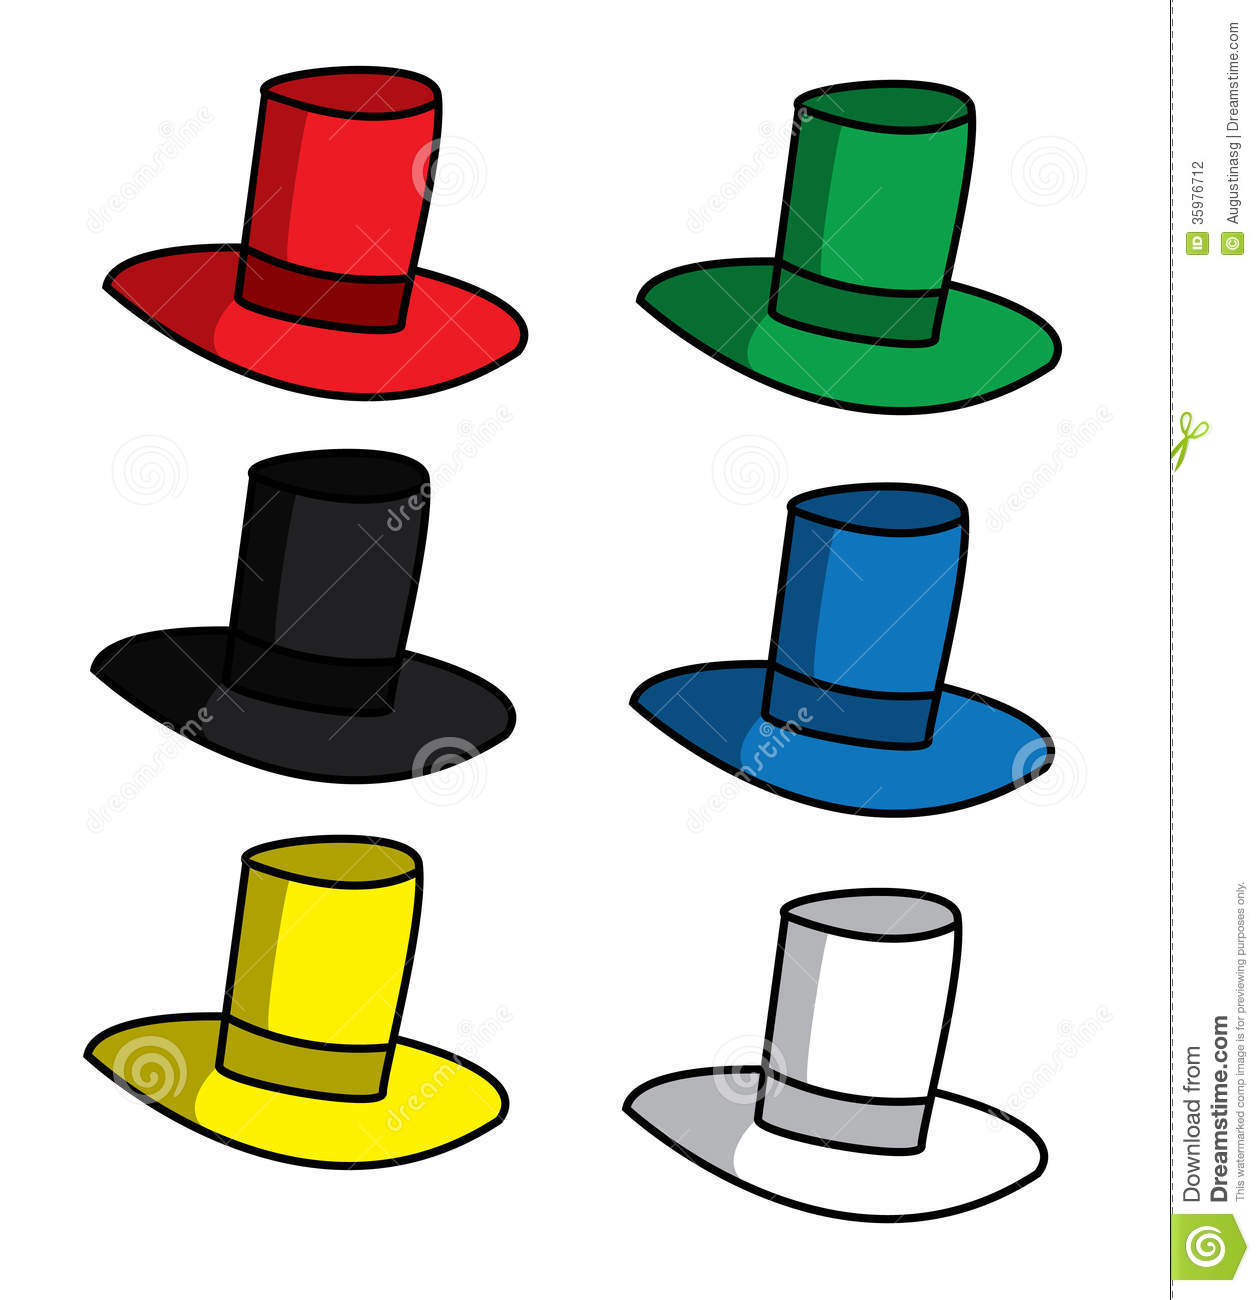 6 thinking hats clipart transparent download Thinking hat clipart - ClipartFest transparent download